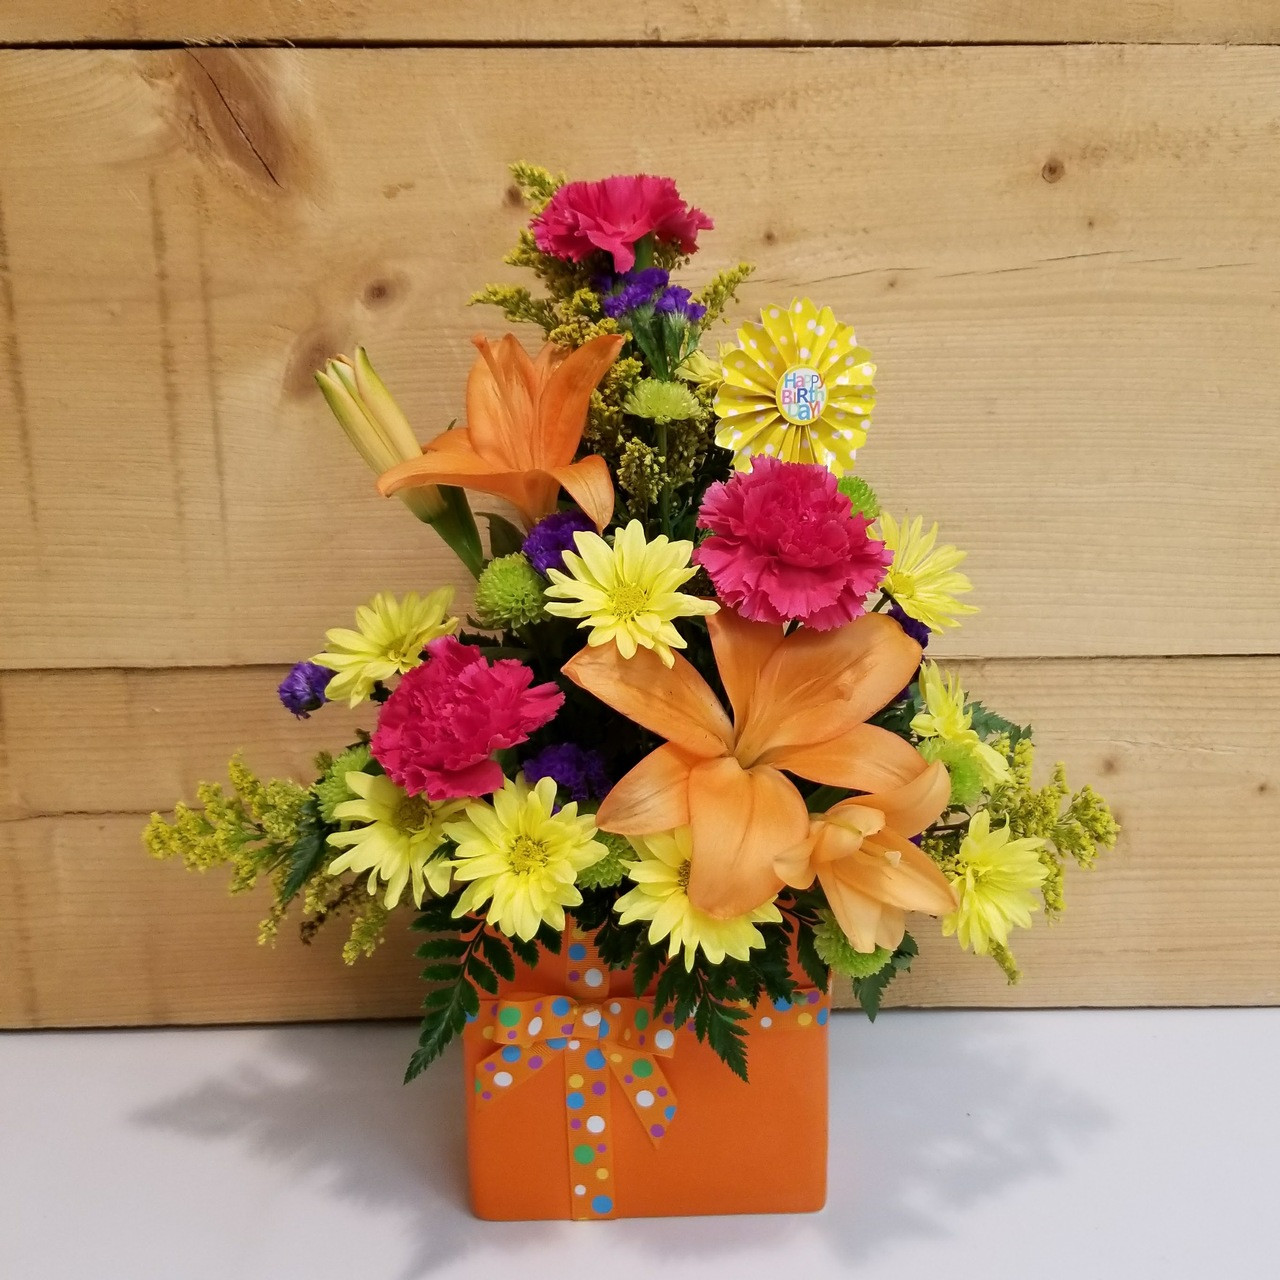 Set To Celebrate Birthday Bouquet BD1 By Savilles Country Florist Flowers And